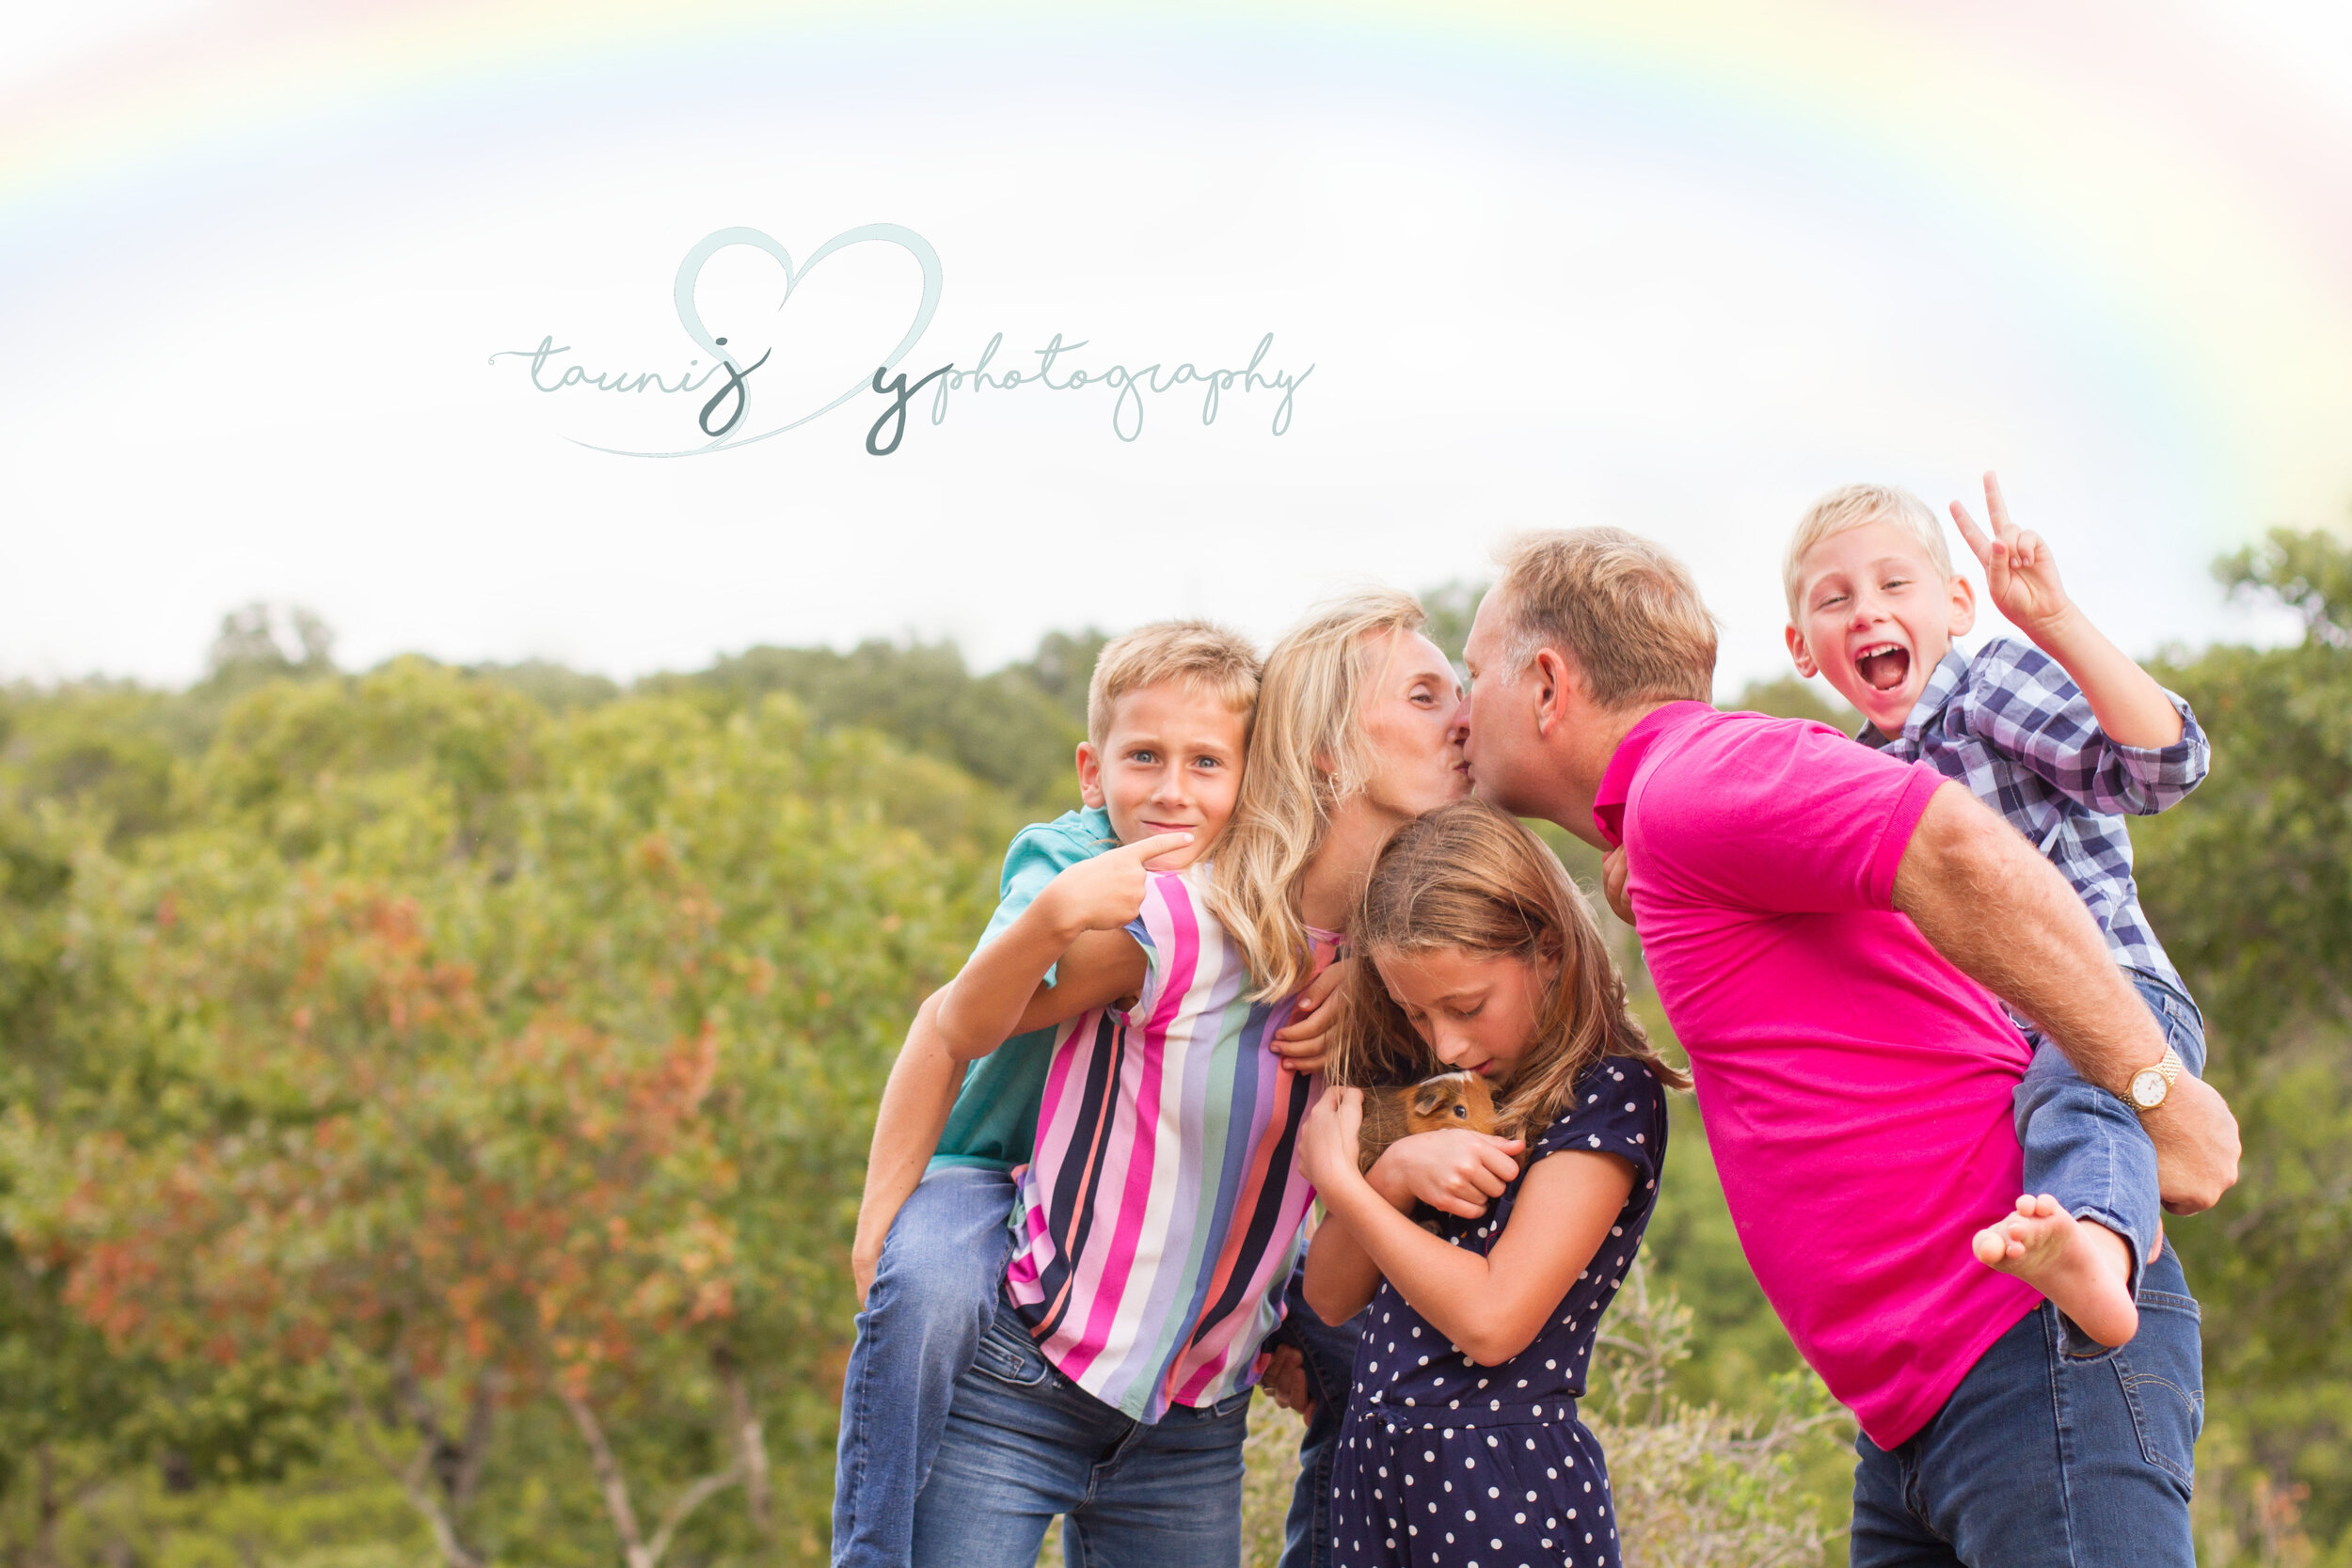 This family images made me giggle and smile . I love the oldest boy pointing to mom and dad , the younger one saying peace and the daughter just lovin on her pet guinea pig . All wrapped up doing their own thing showing their personalities.  And hello sweet rainbow popping out after the rain to embrace the chaos.  Thank you for opening your to me to capture your family !  Inspired me to host some family fun game nights this weekend!  Tauni Joy photography